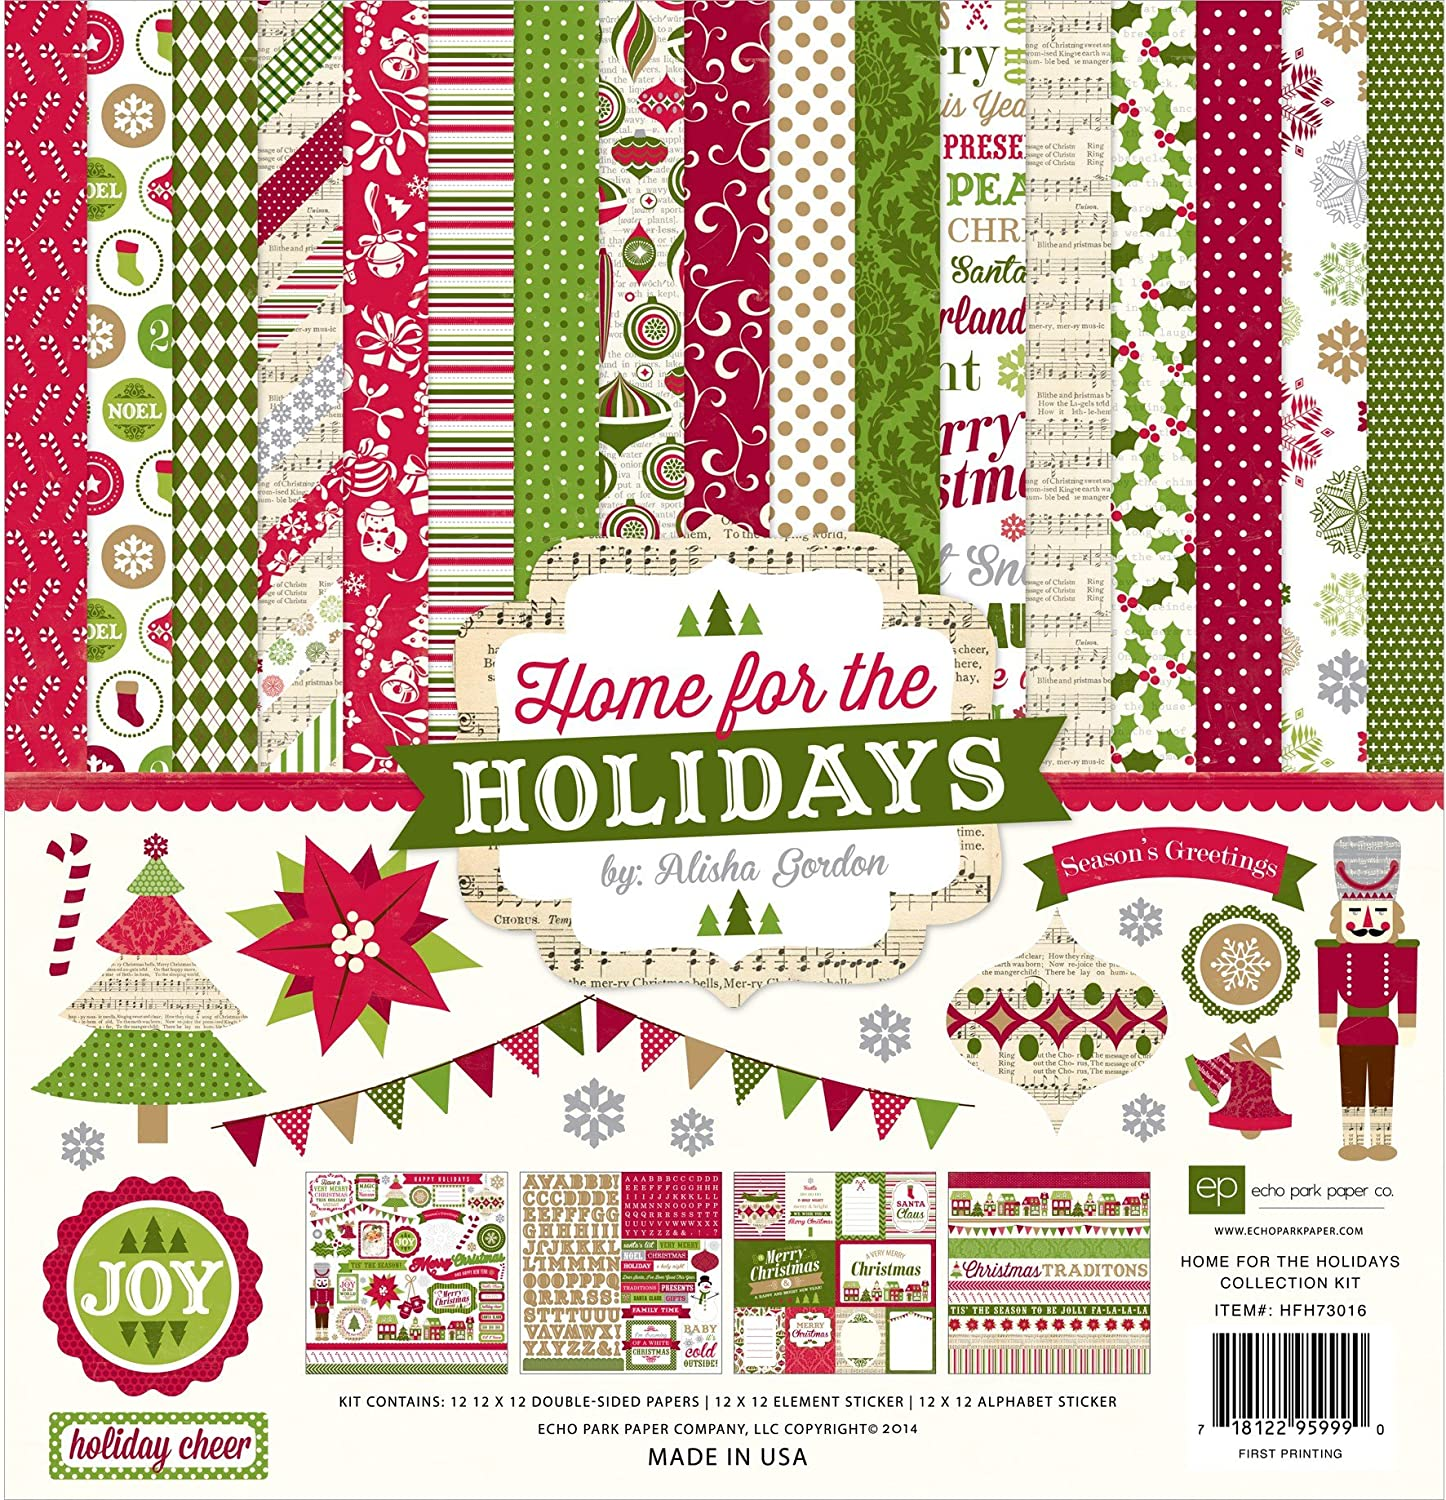 Echo Park Paper Company Home for The Holidays Collection Kit